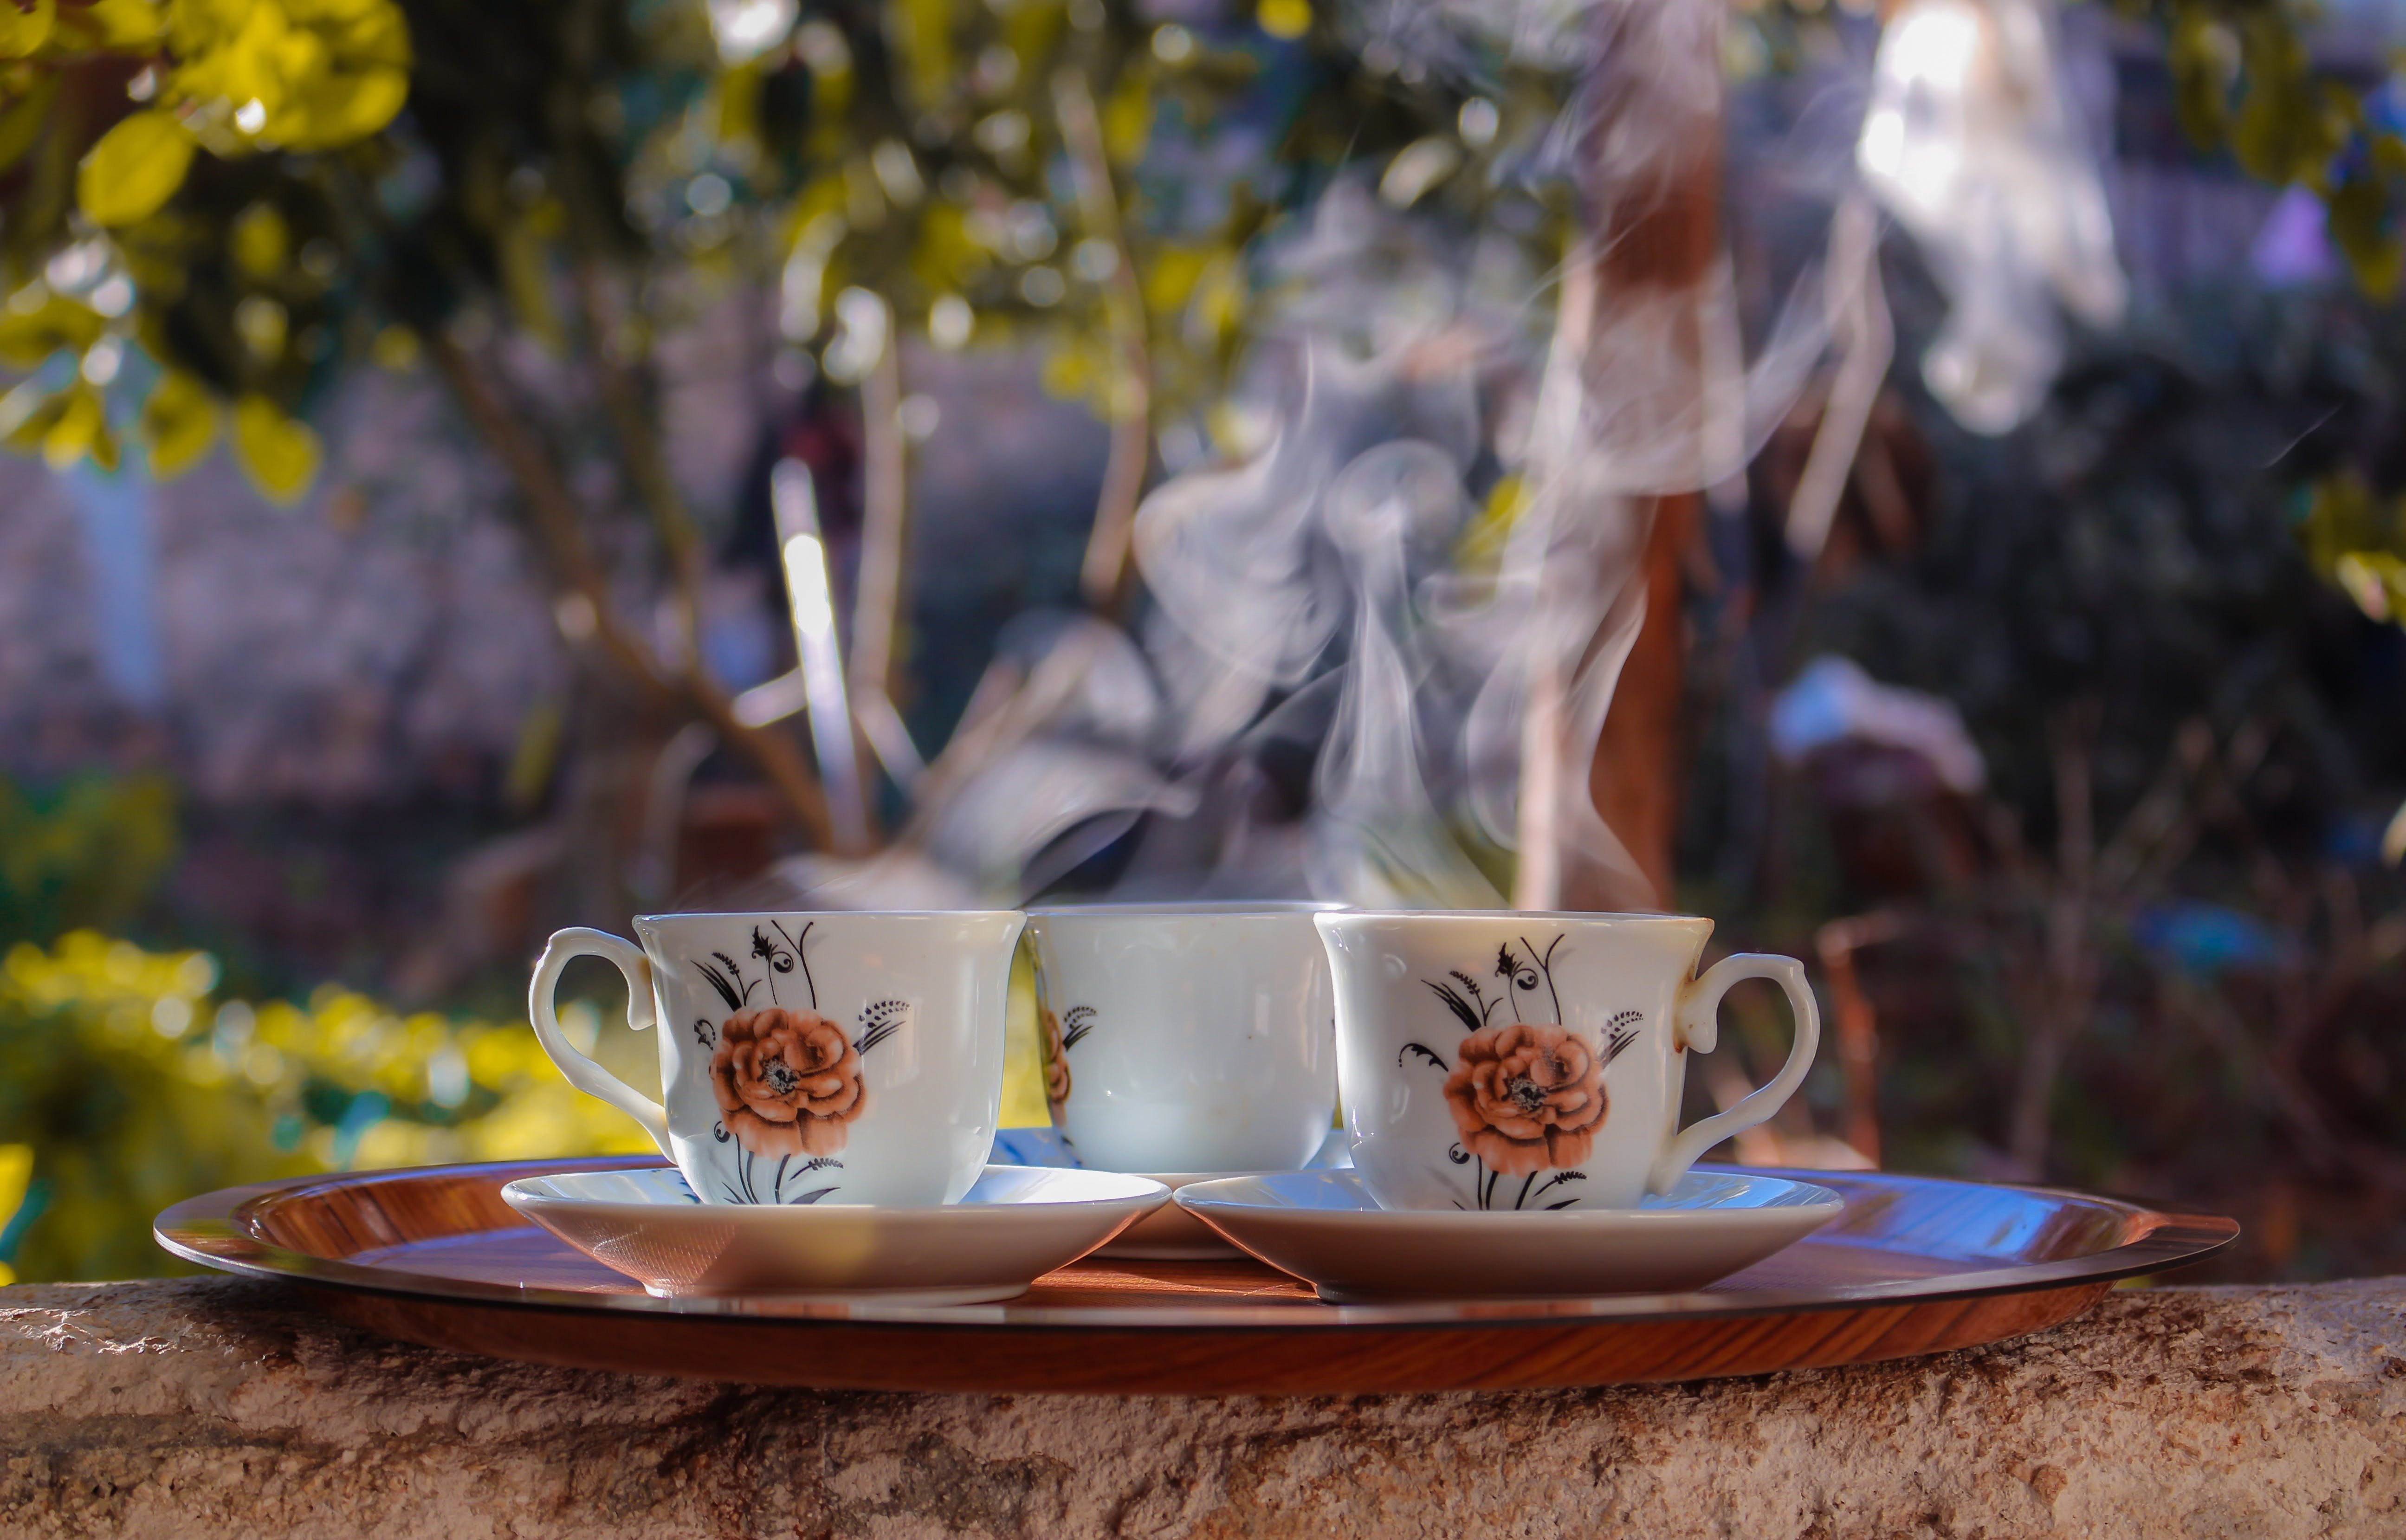 Teacups And Saucers On A Tray